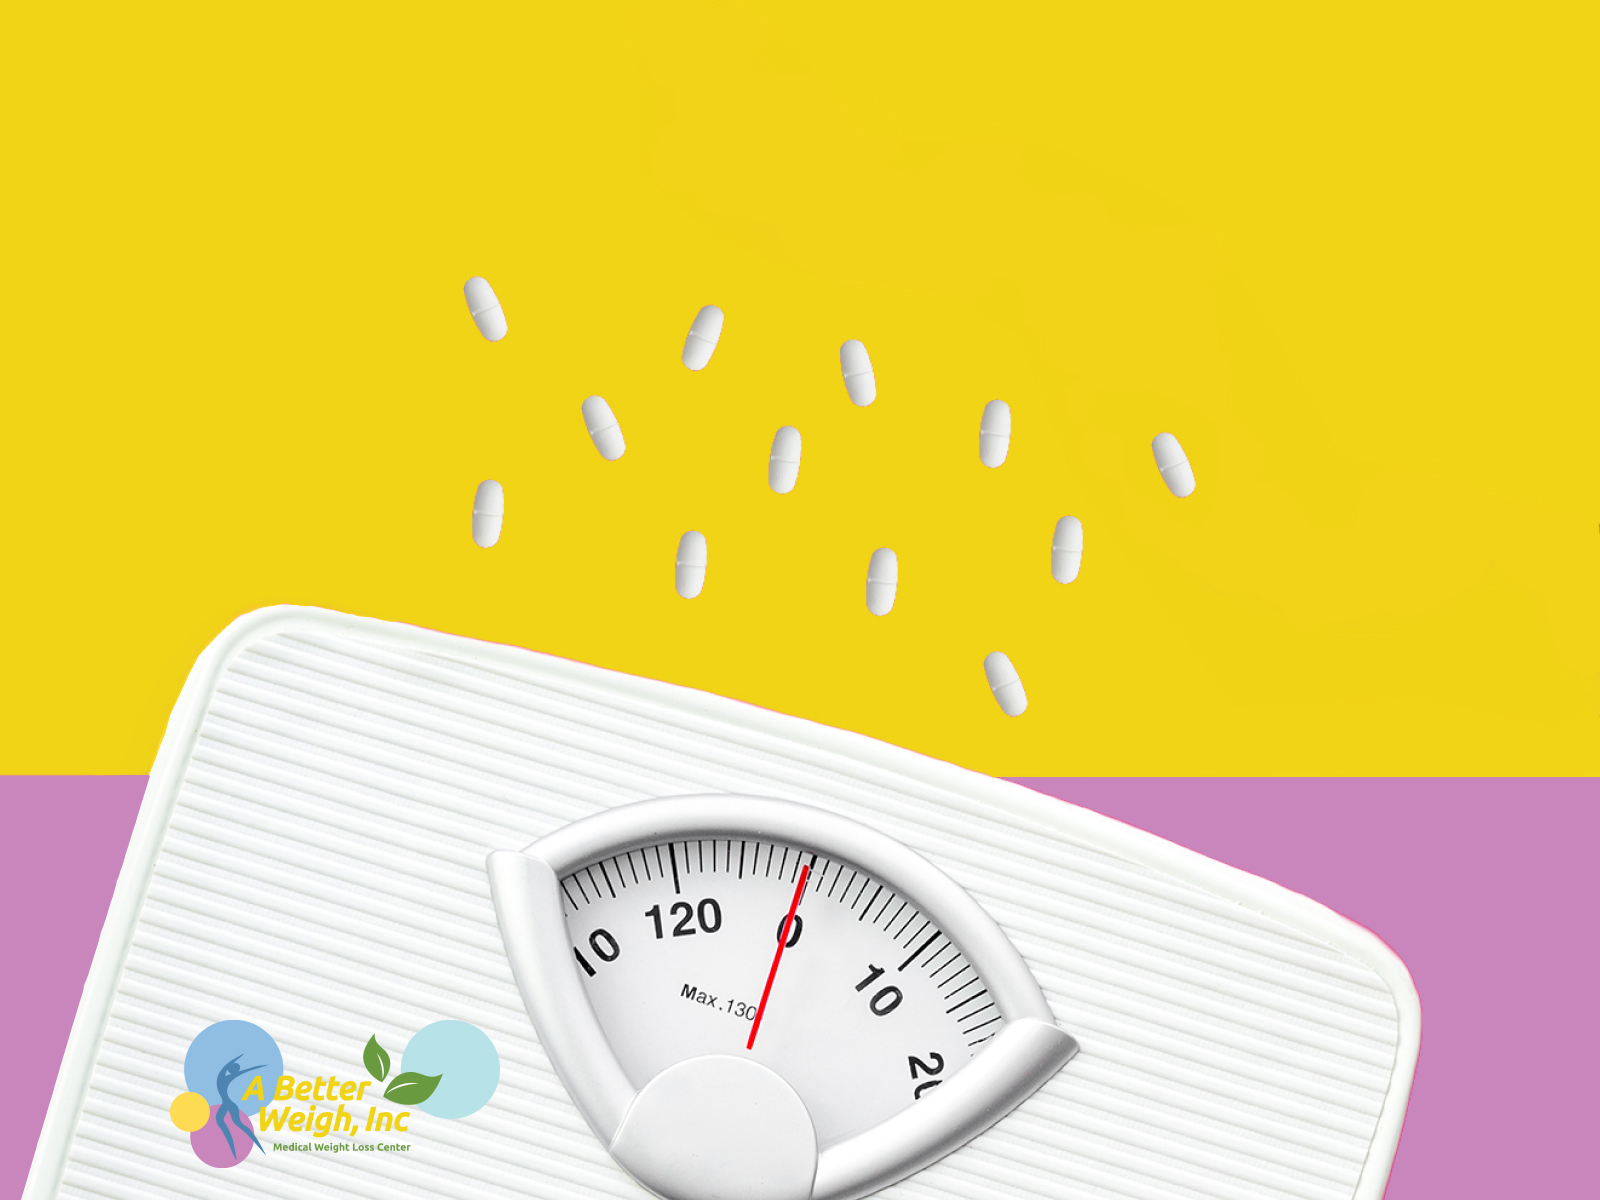 How to make phentermine more effective